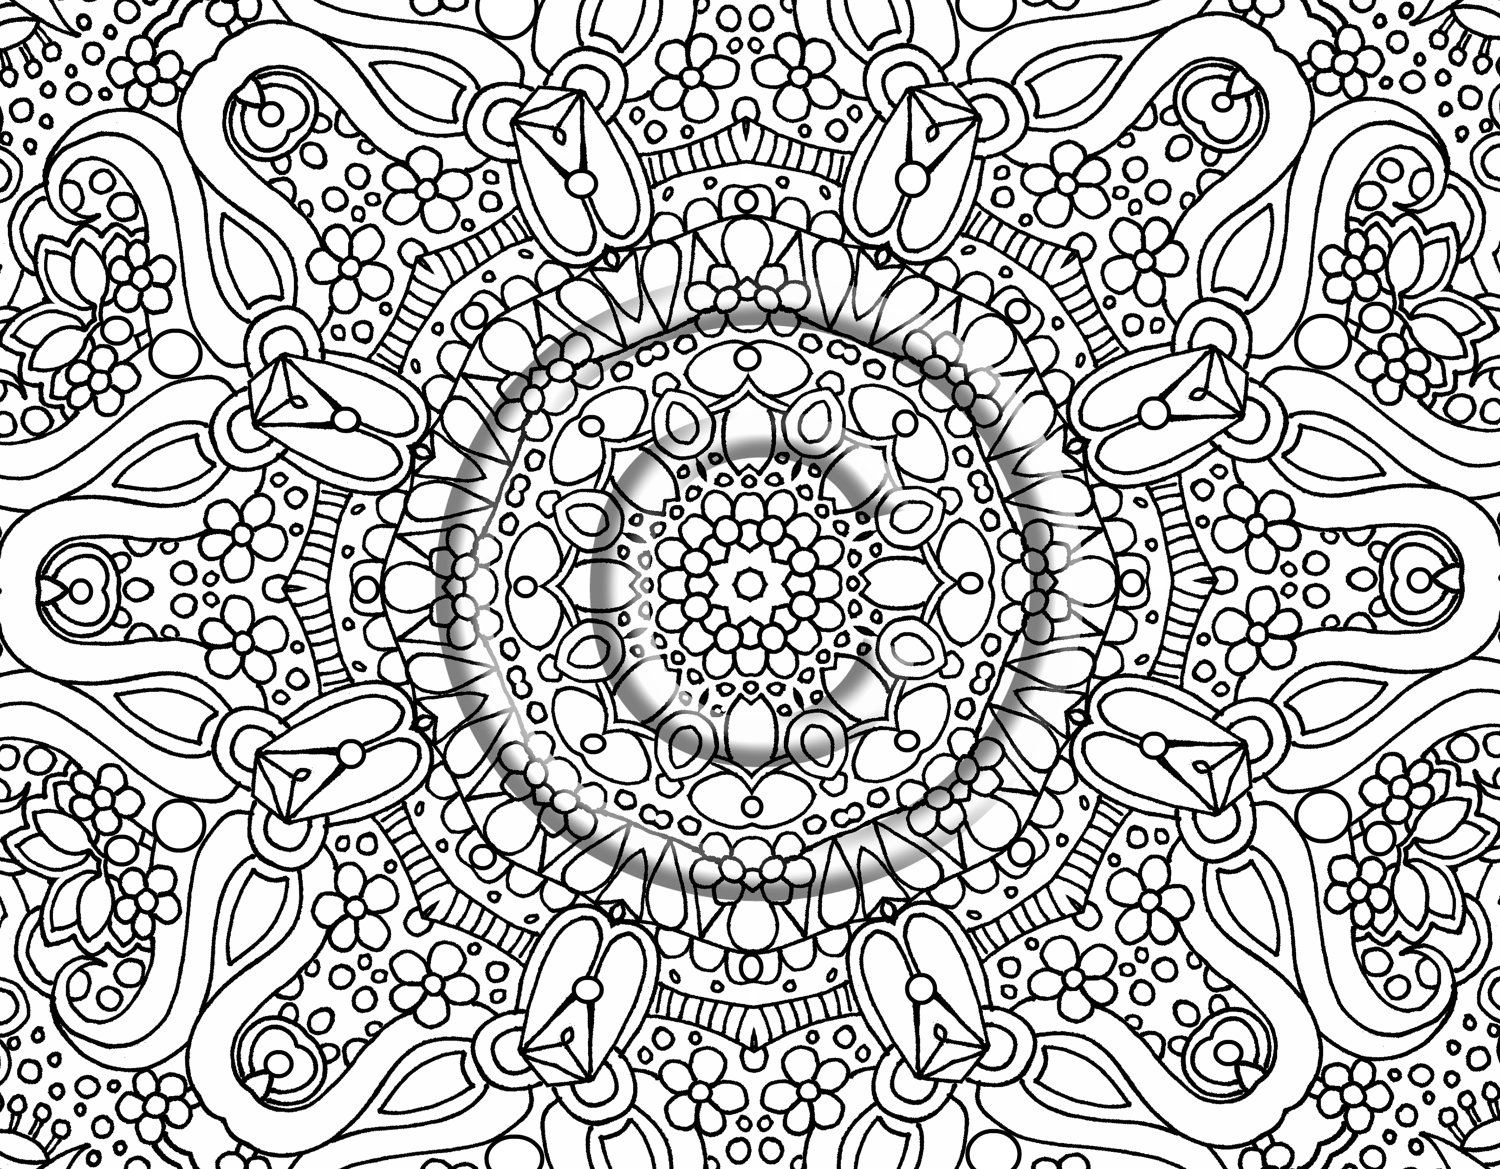 hard coloring pages - Coloring Pages Abstract Designs